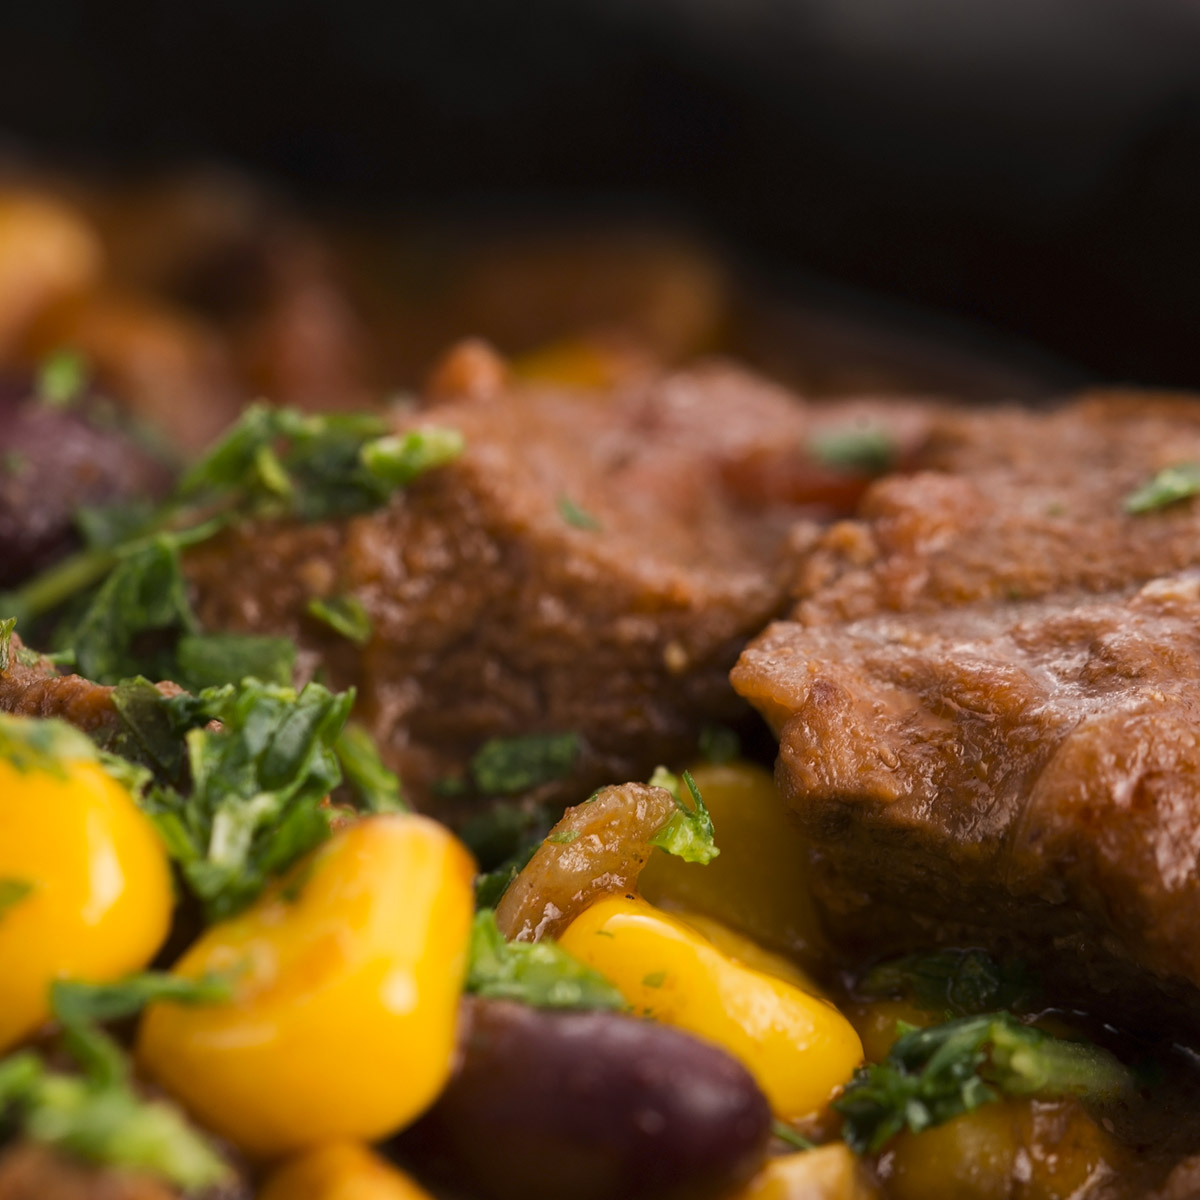 Pinotage Food suggestion - Venison Casserole